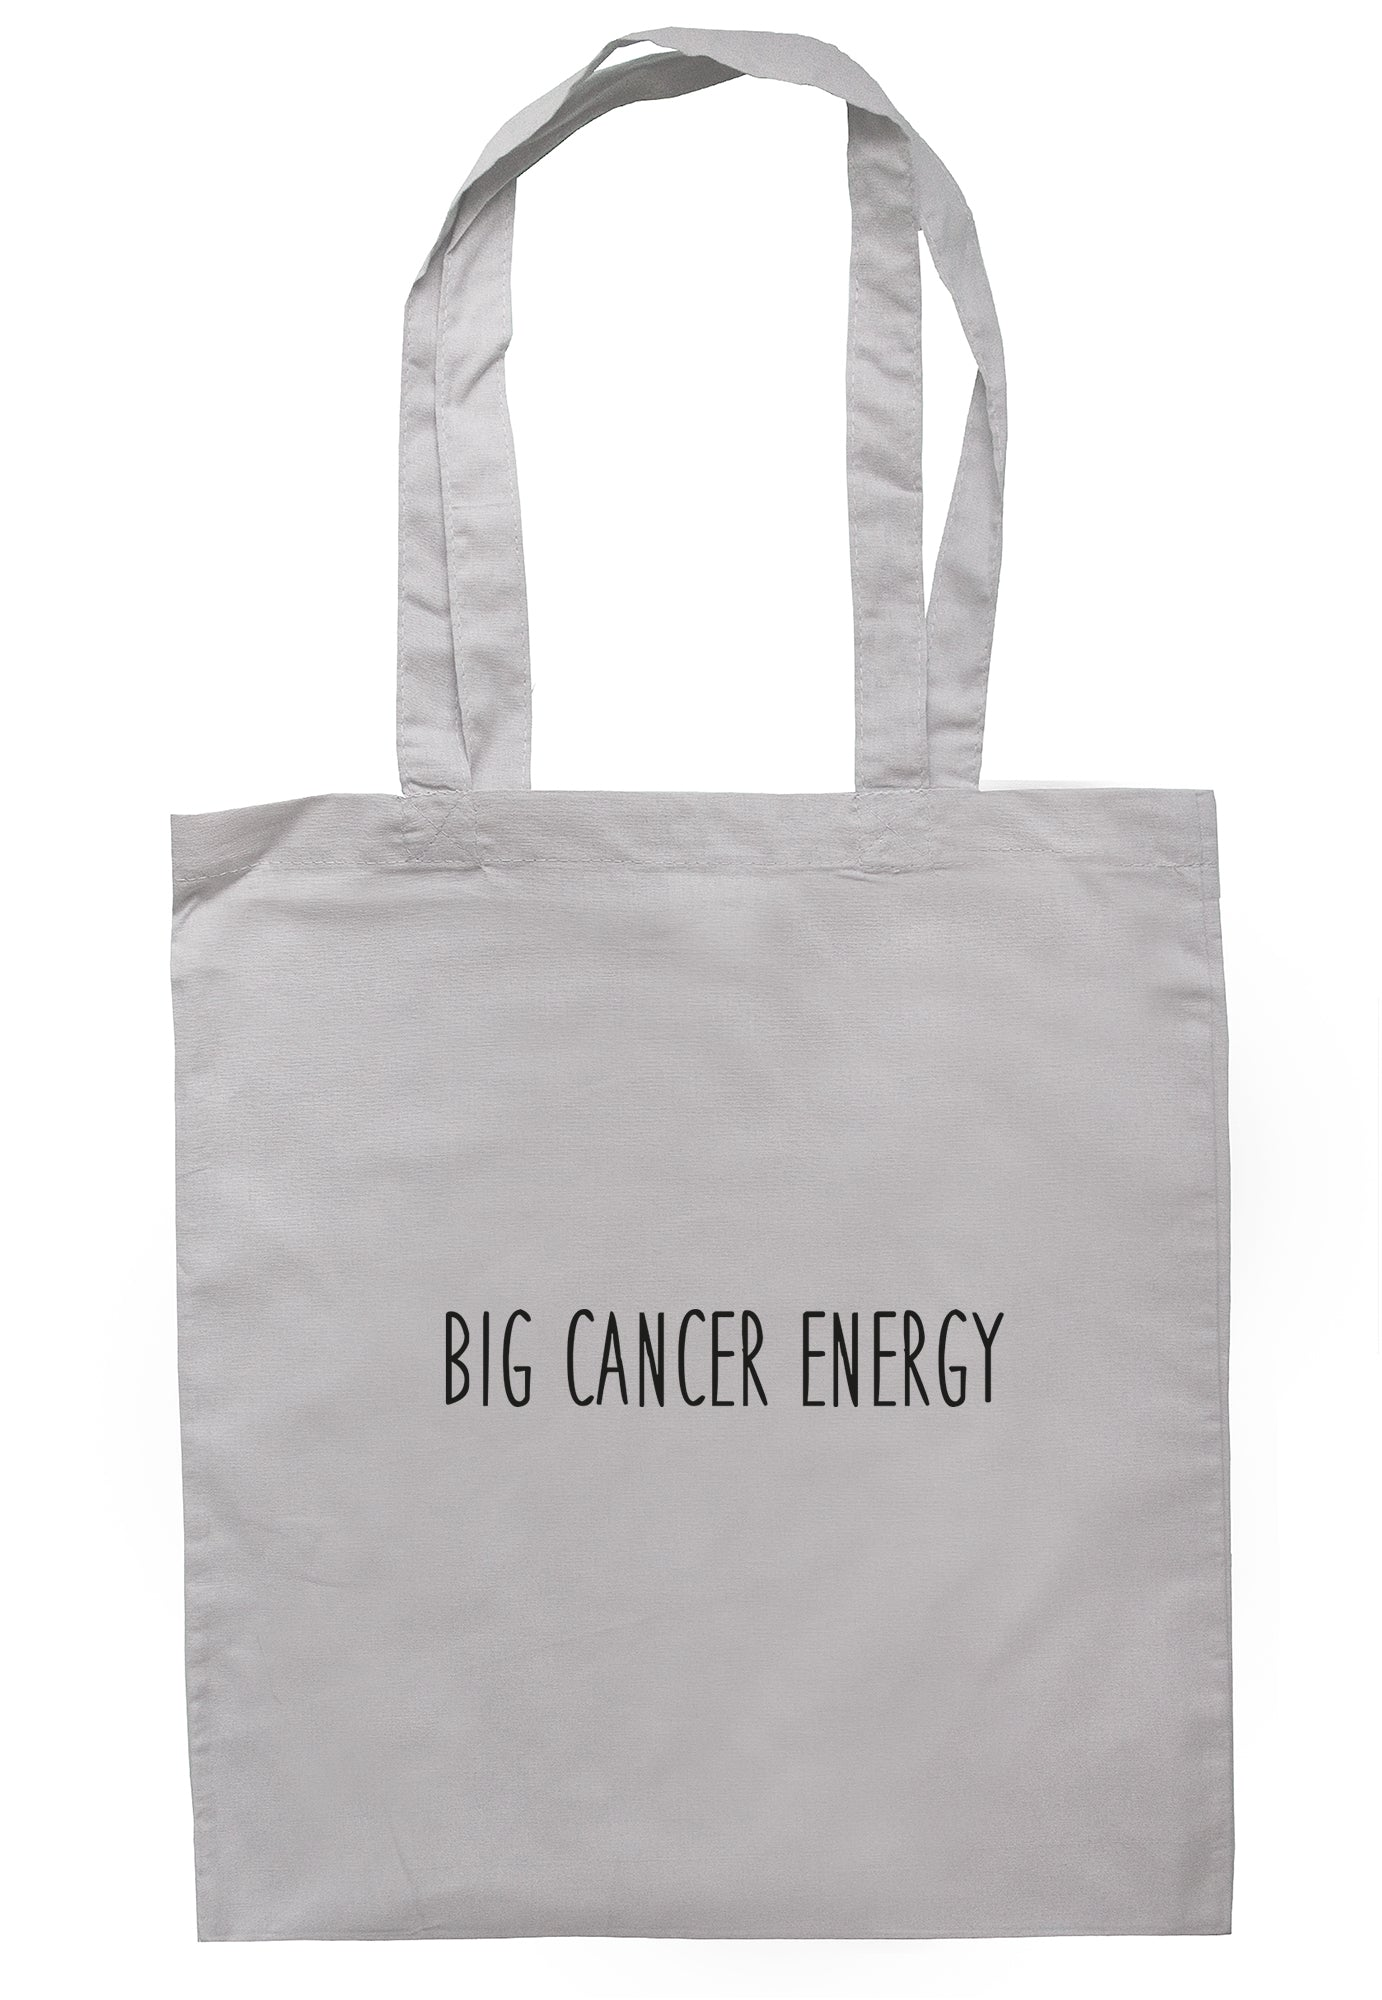 Big Cancer Energy Tote Bag S1021 - Illustrated Identity Ltd.